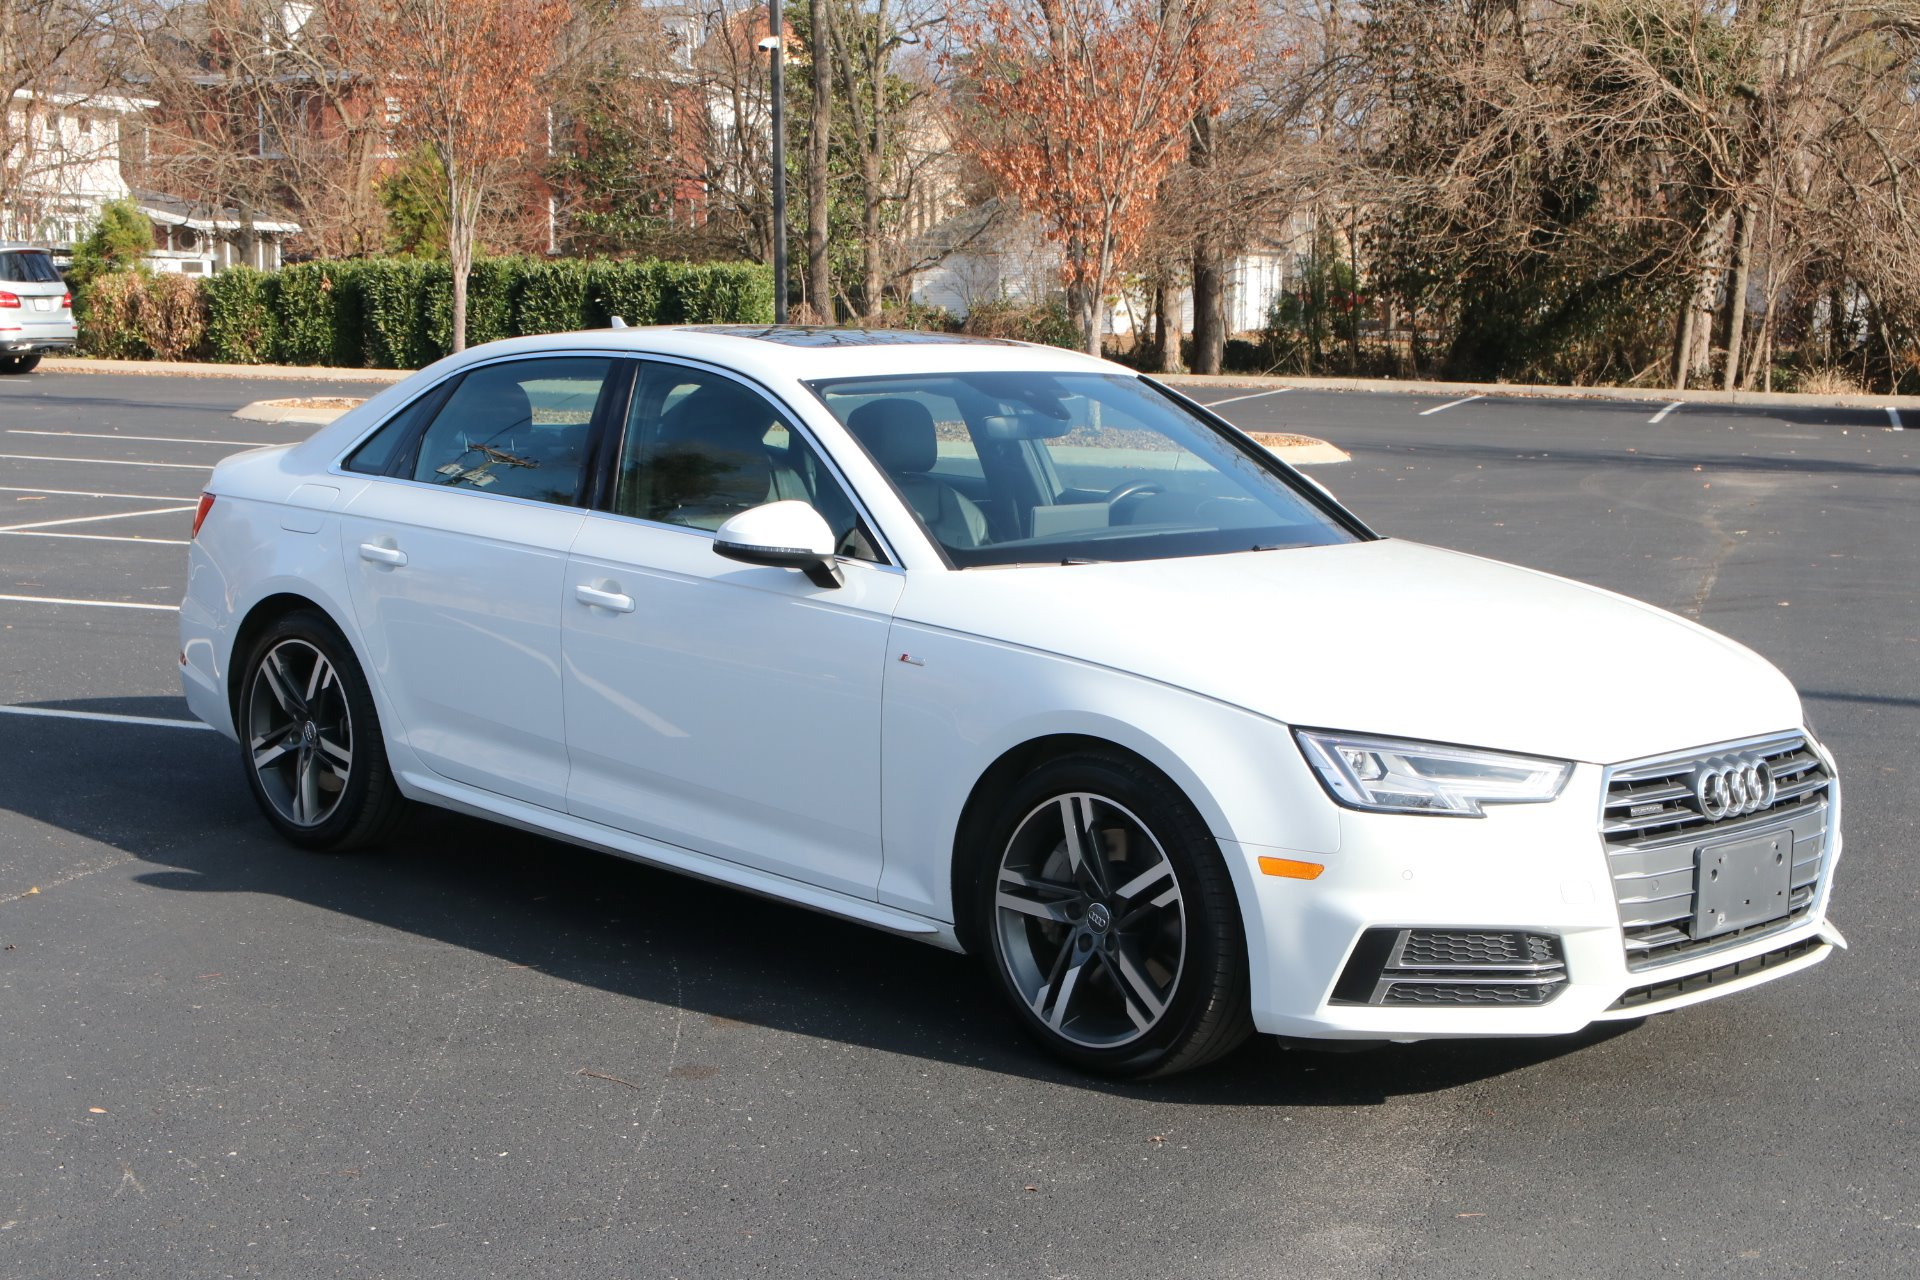 Used 2017 Audi A4  2.0T PREMIUM PLUS QUATTRO W/NAV 2.0T quattro Premium Plus for sale Sold at Auto Collection in Murfreesboro TN 37129 1